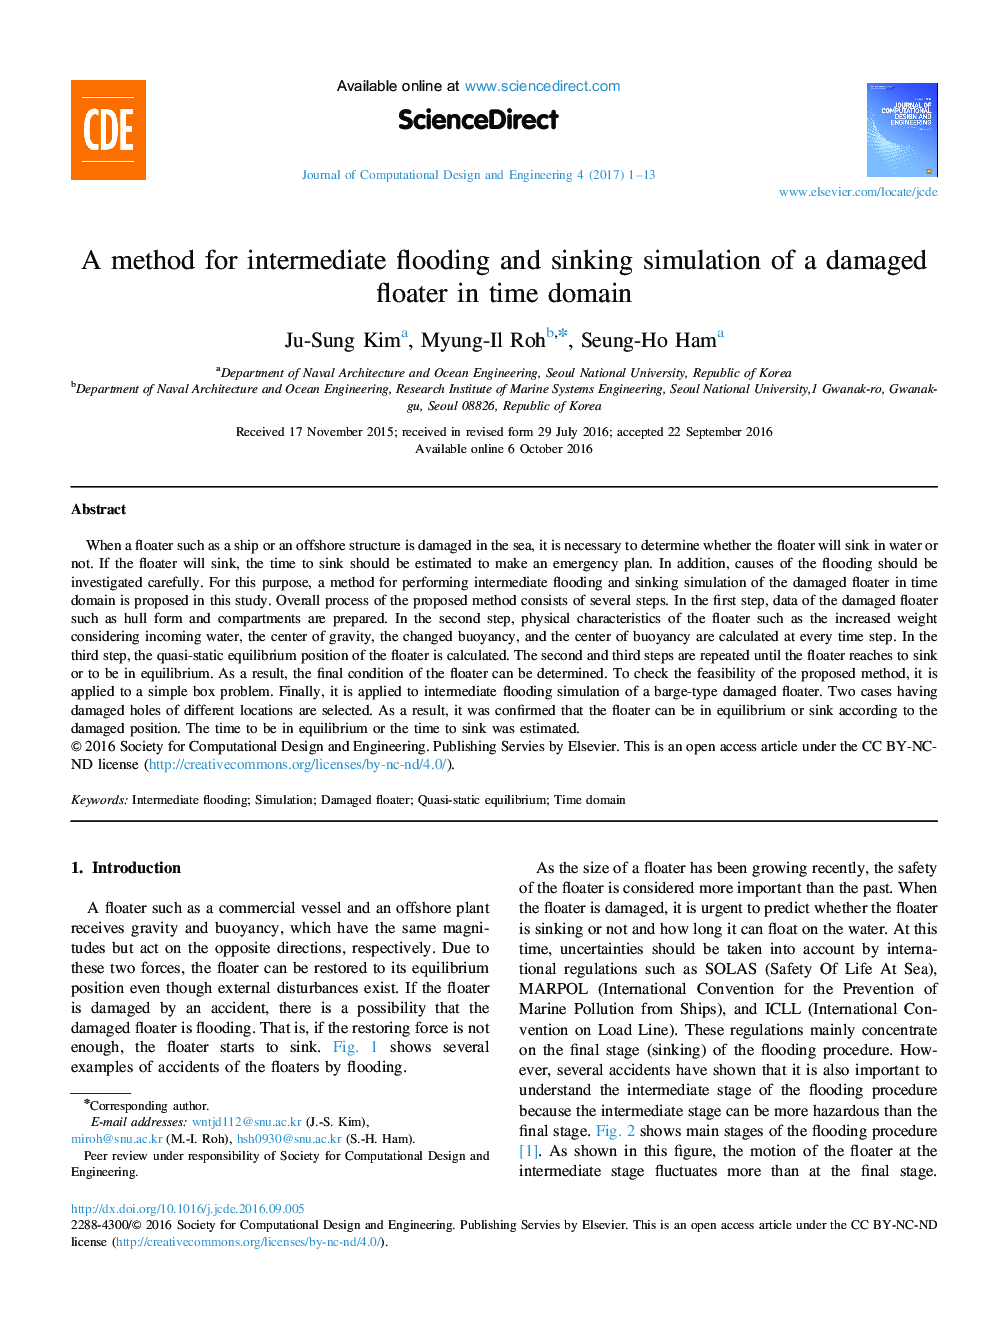 A method for intermediate flooding and sinking simulation of a damaged floater in time domain